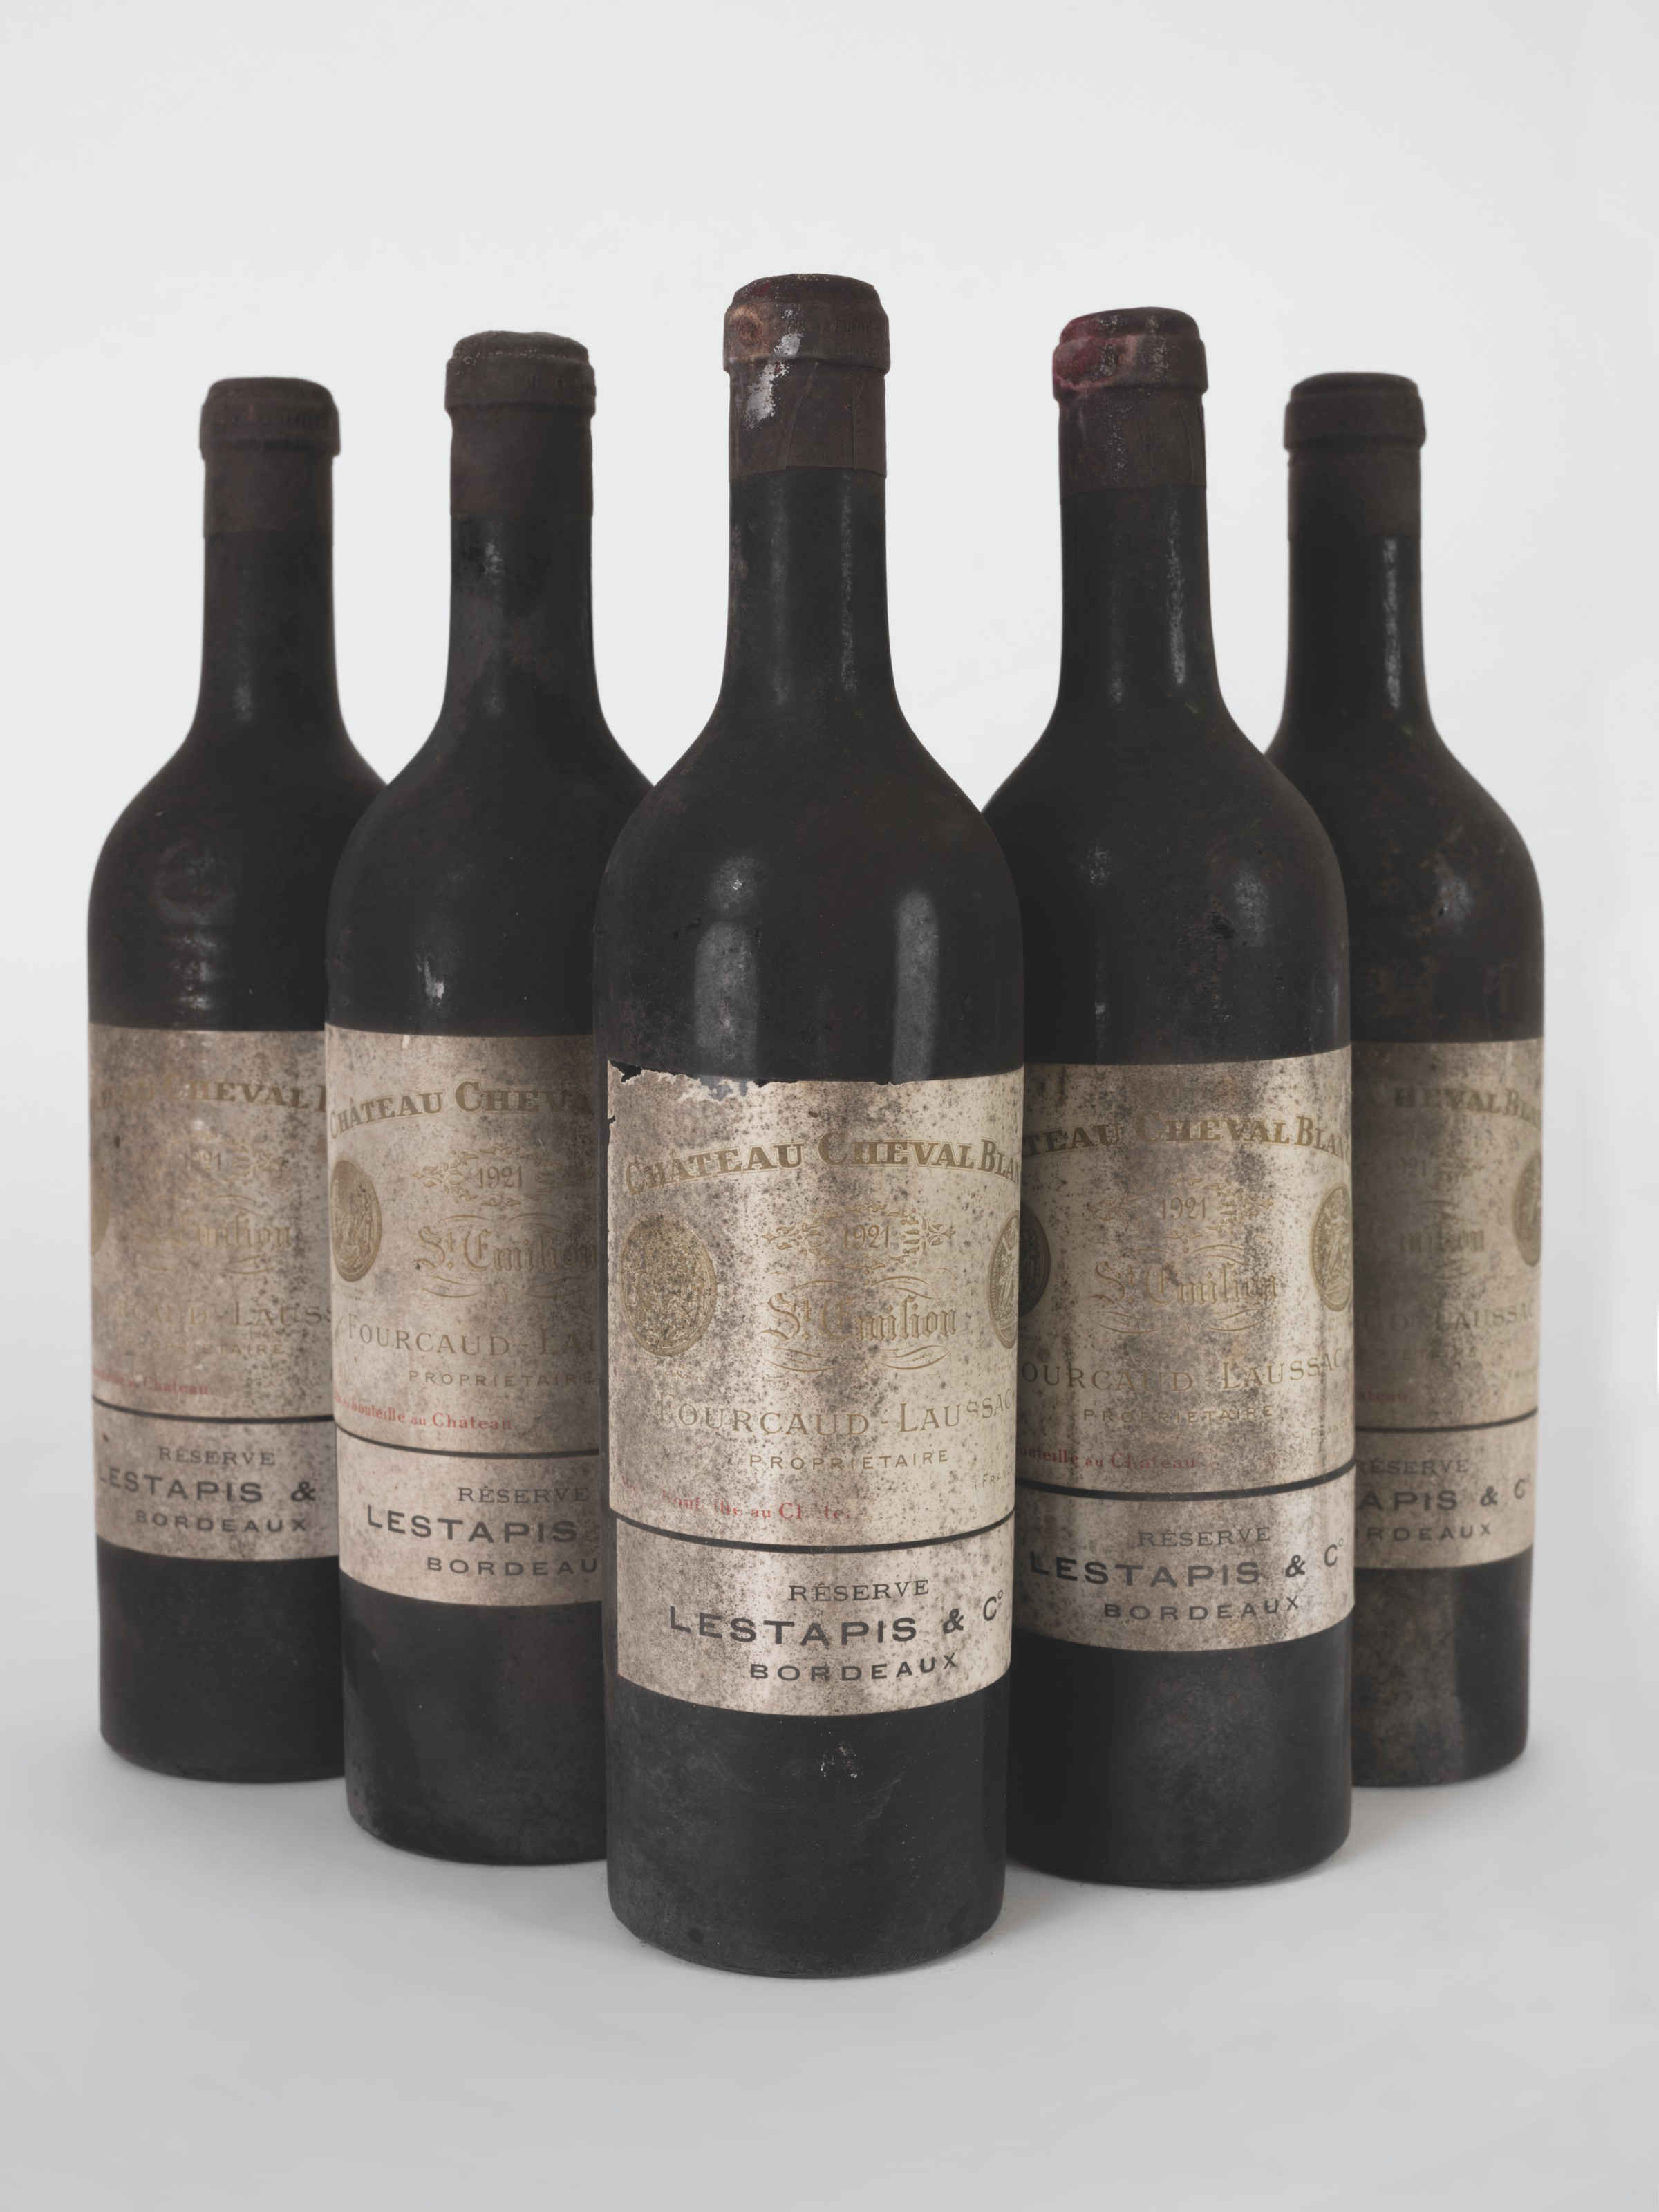 Château Cheval-Blanc 1921. 6 bottles per lot. Sold forCHF 91,875 on 11 May 2021 at Christie's in Geneva